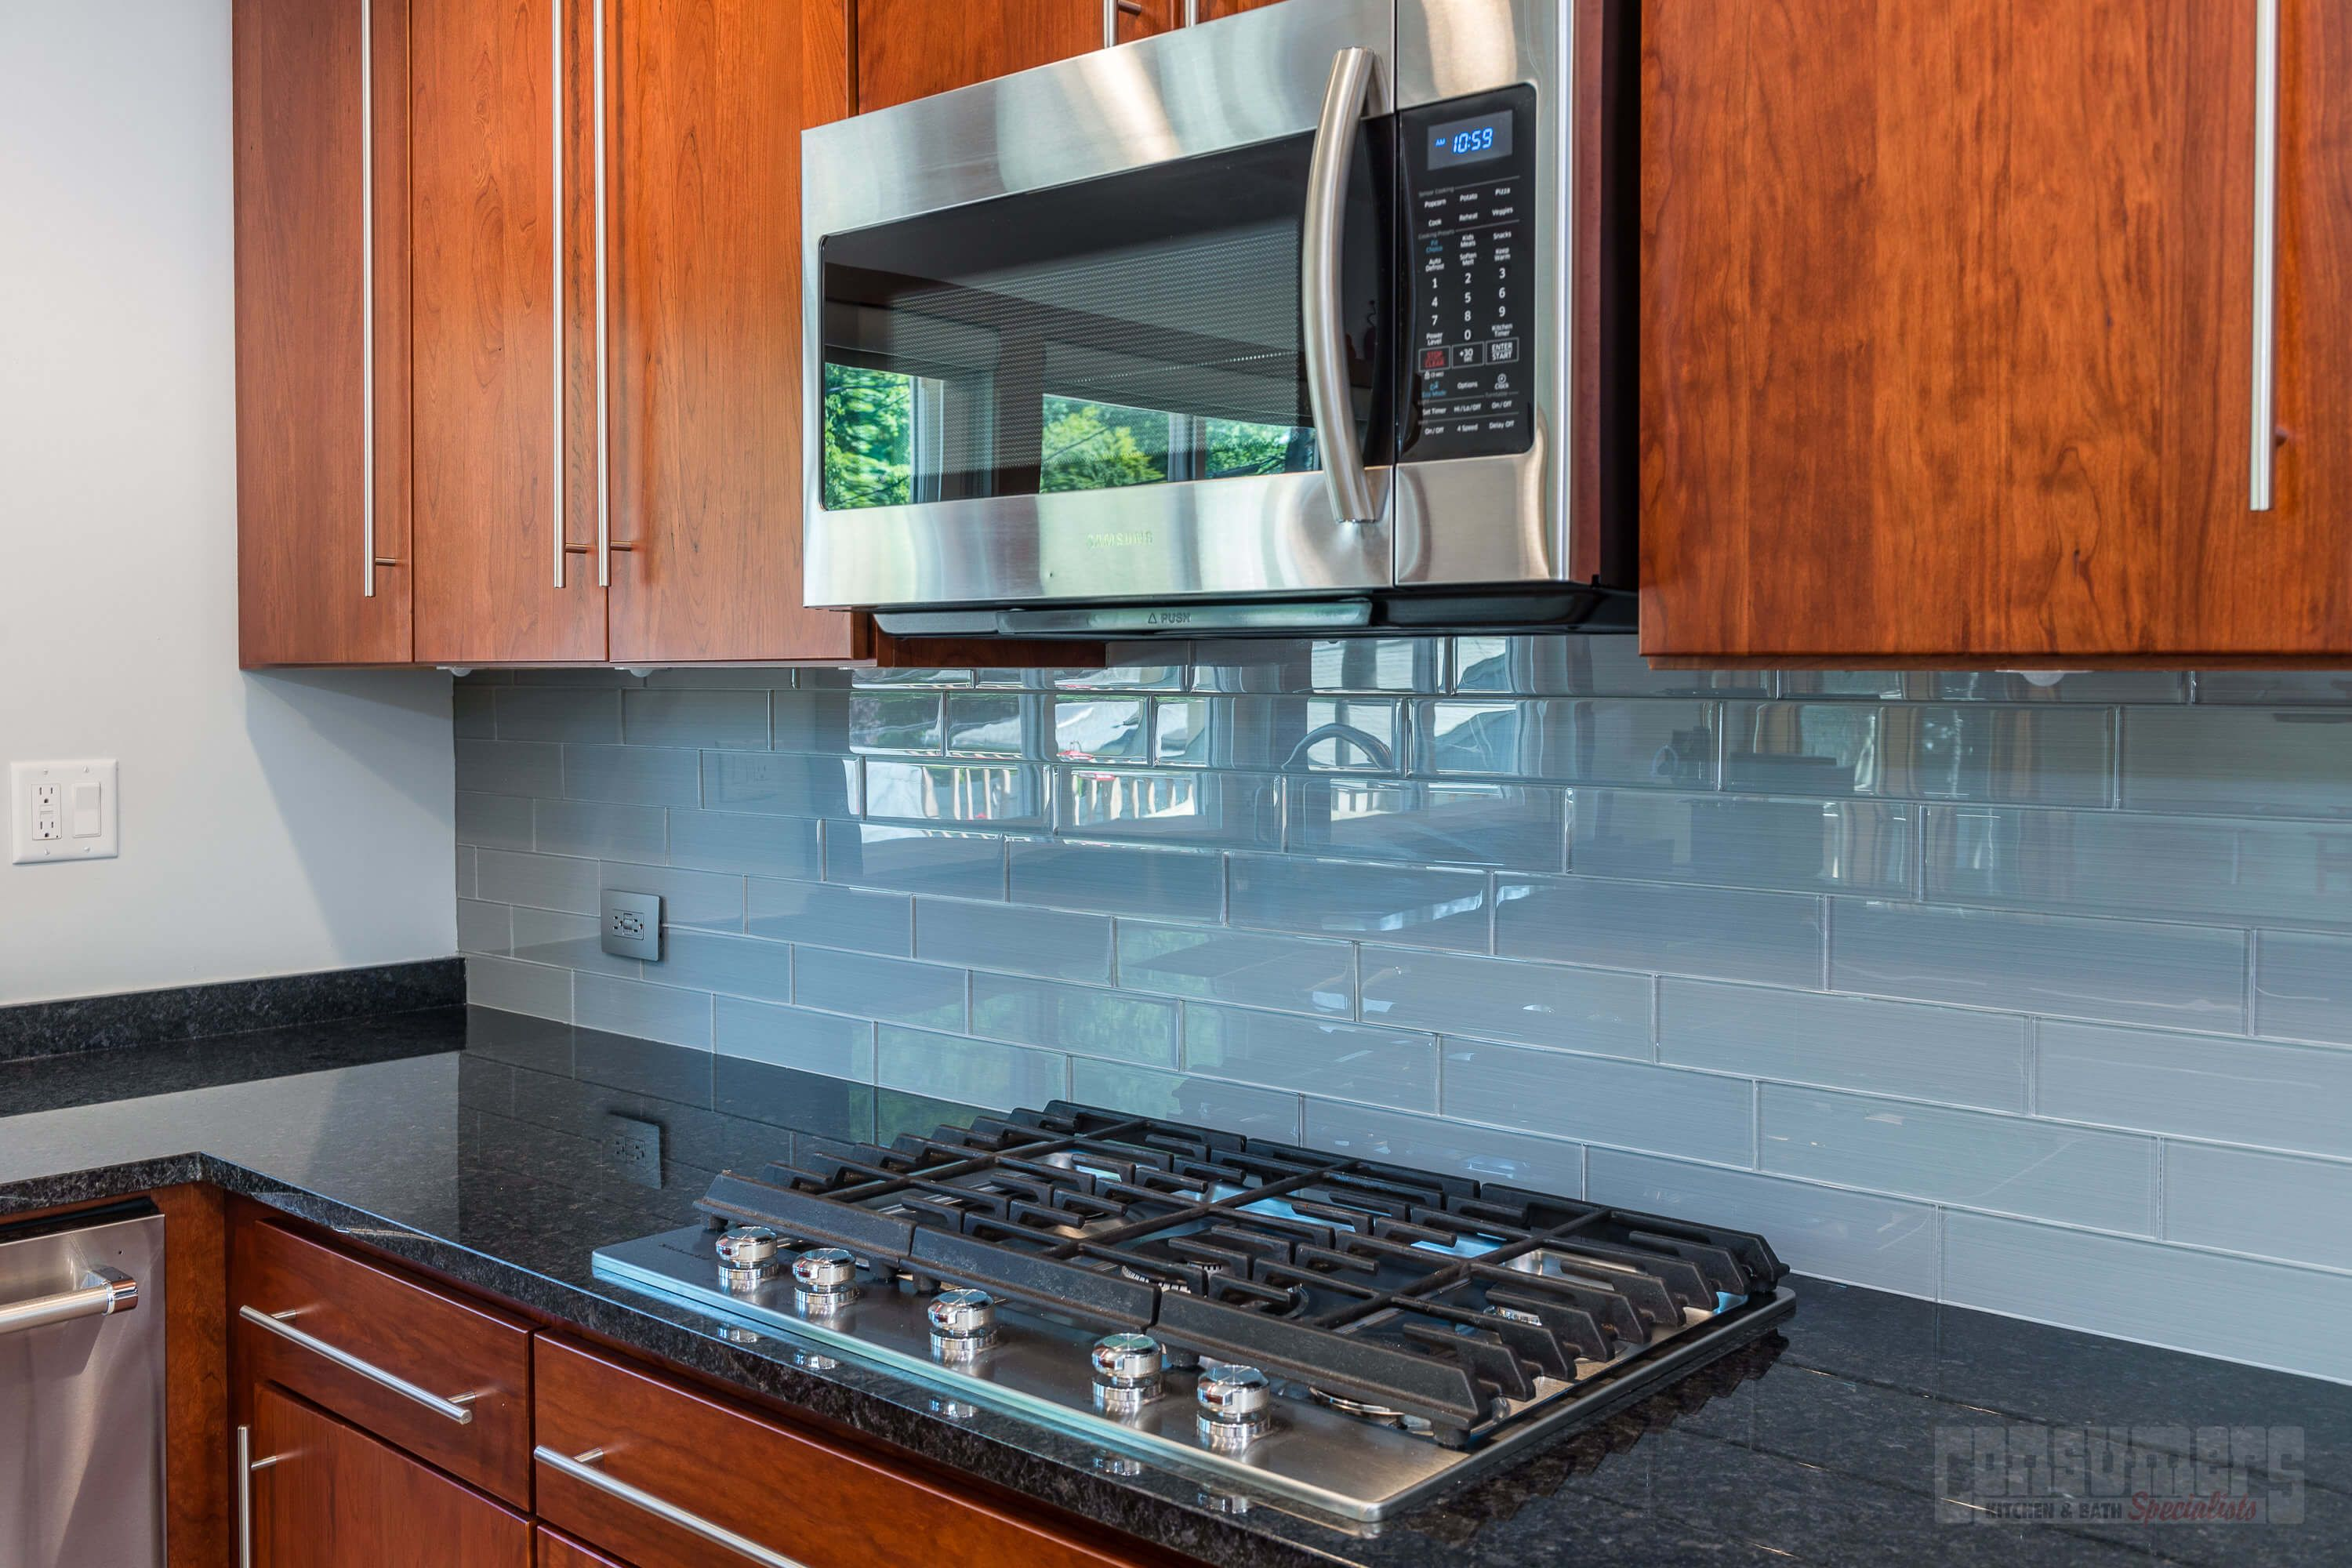 Pin by Consumers Kitchens & Baths on Glen Cove Garde | Pinterest ...